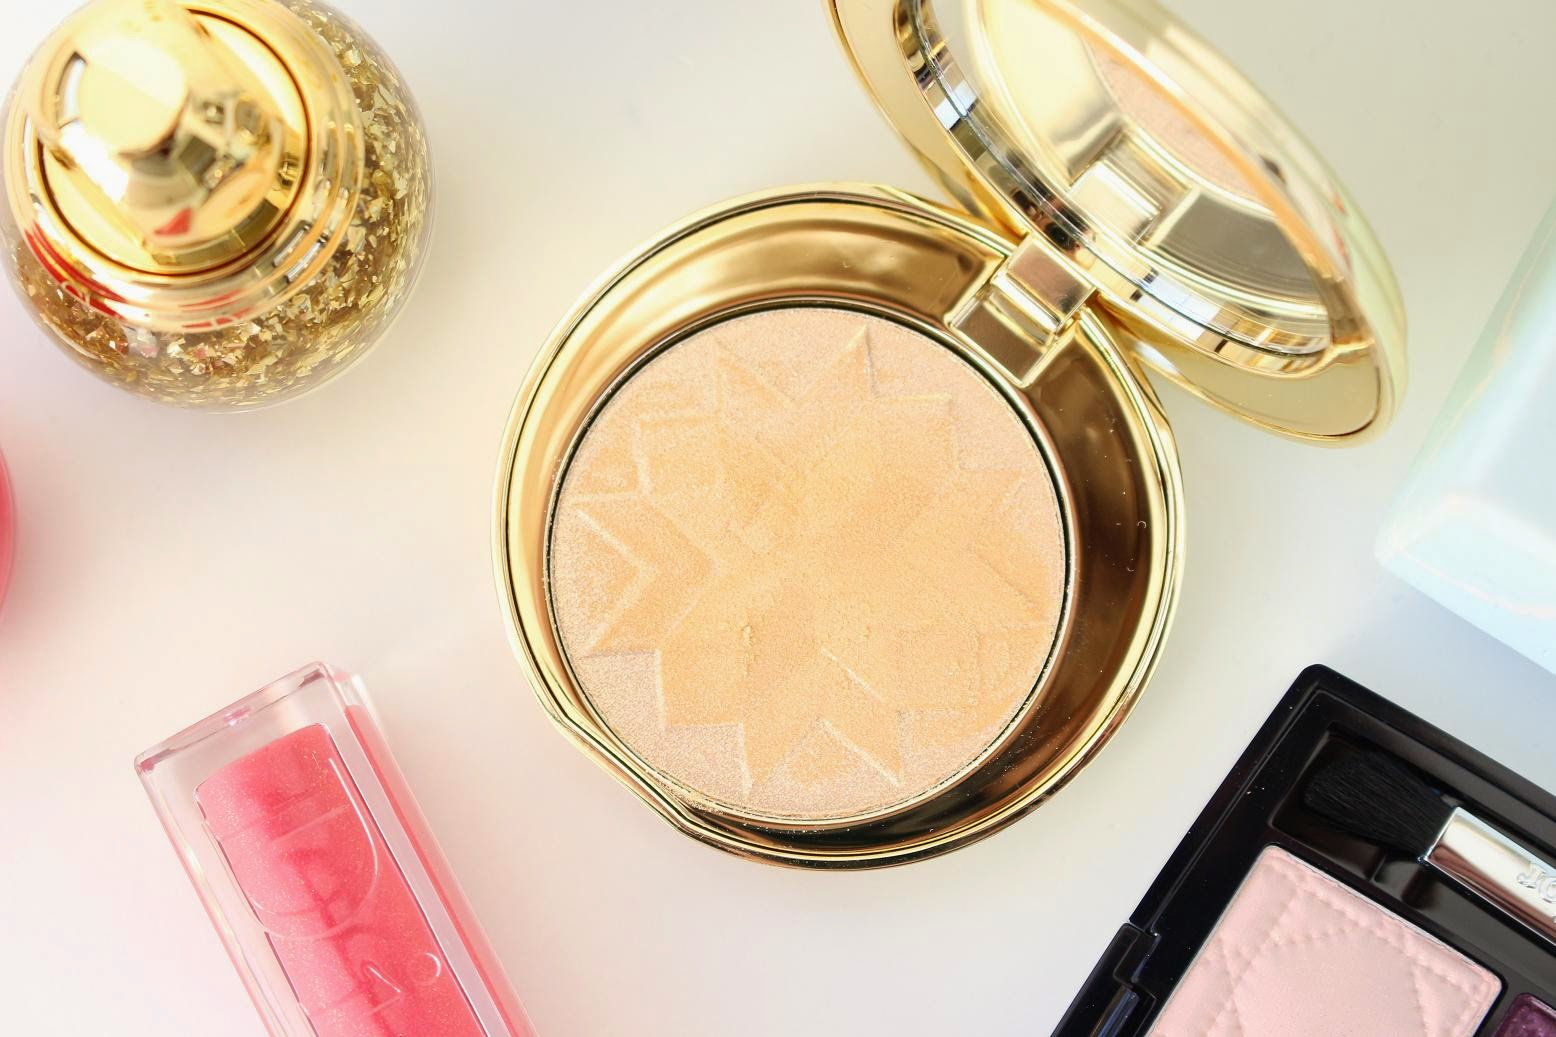 Diorific Golden Shock Illuminating Pressed Powder